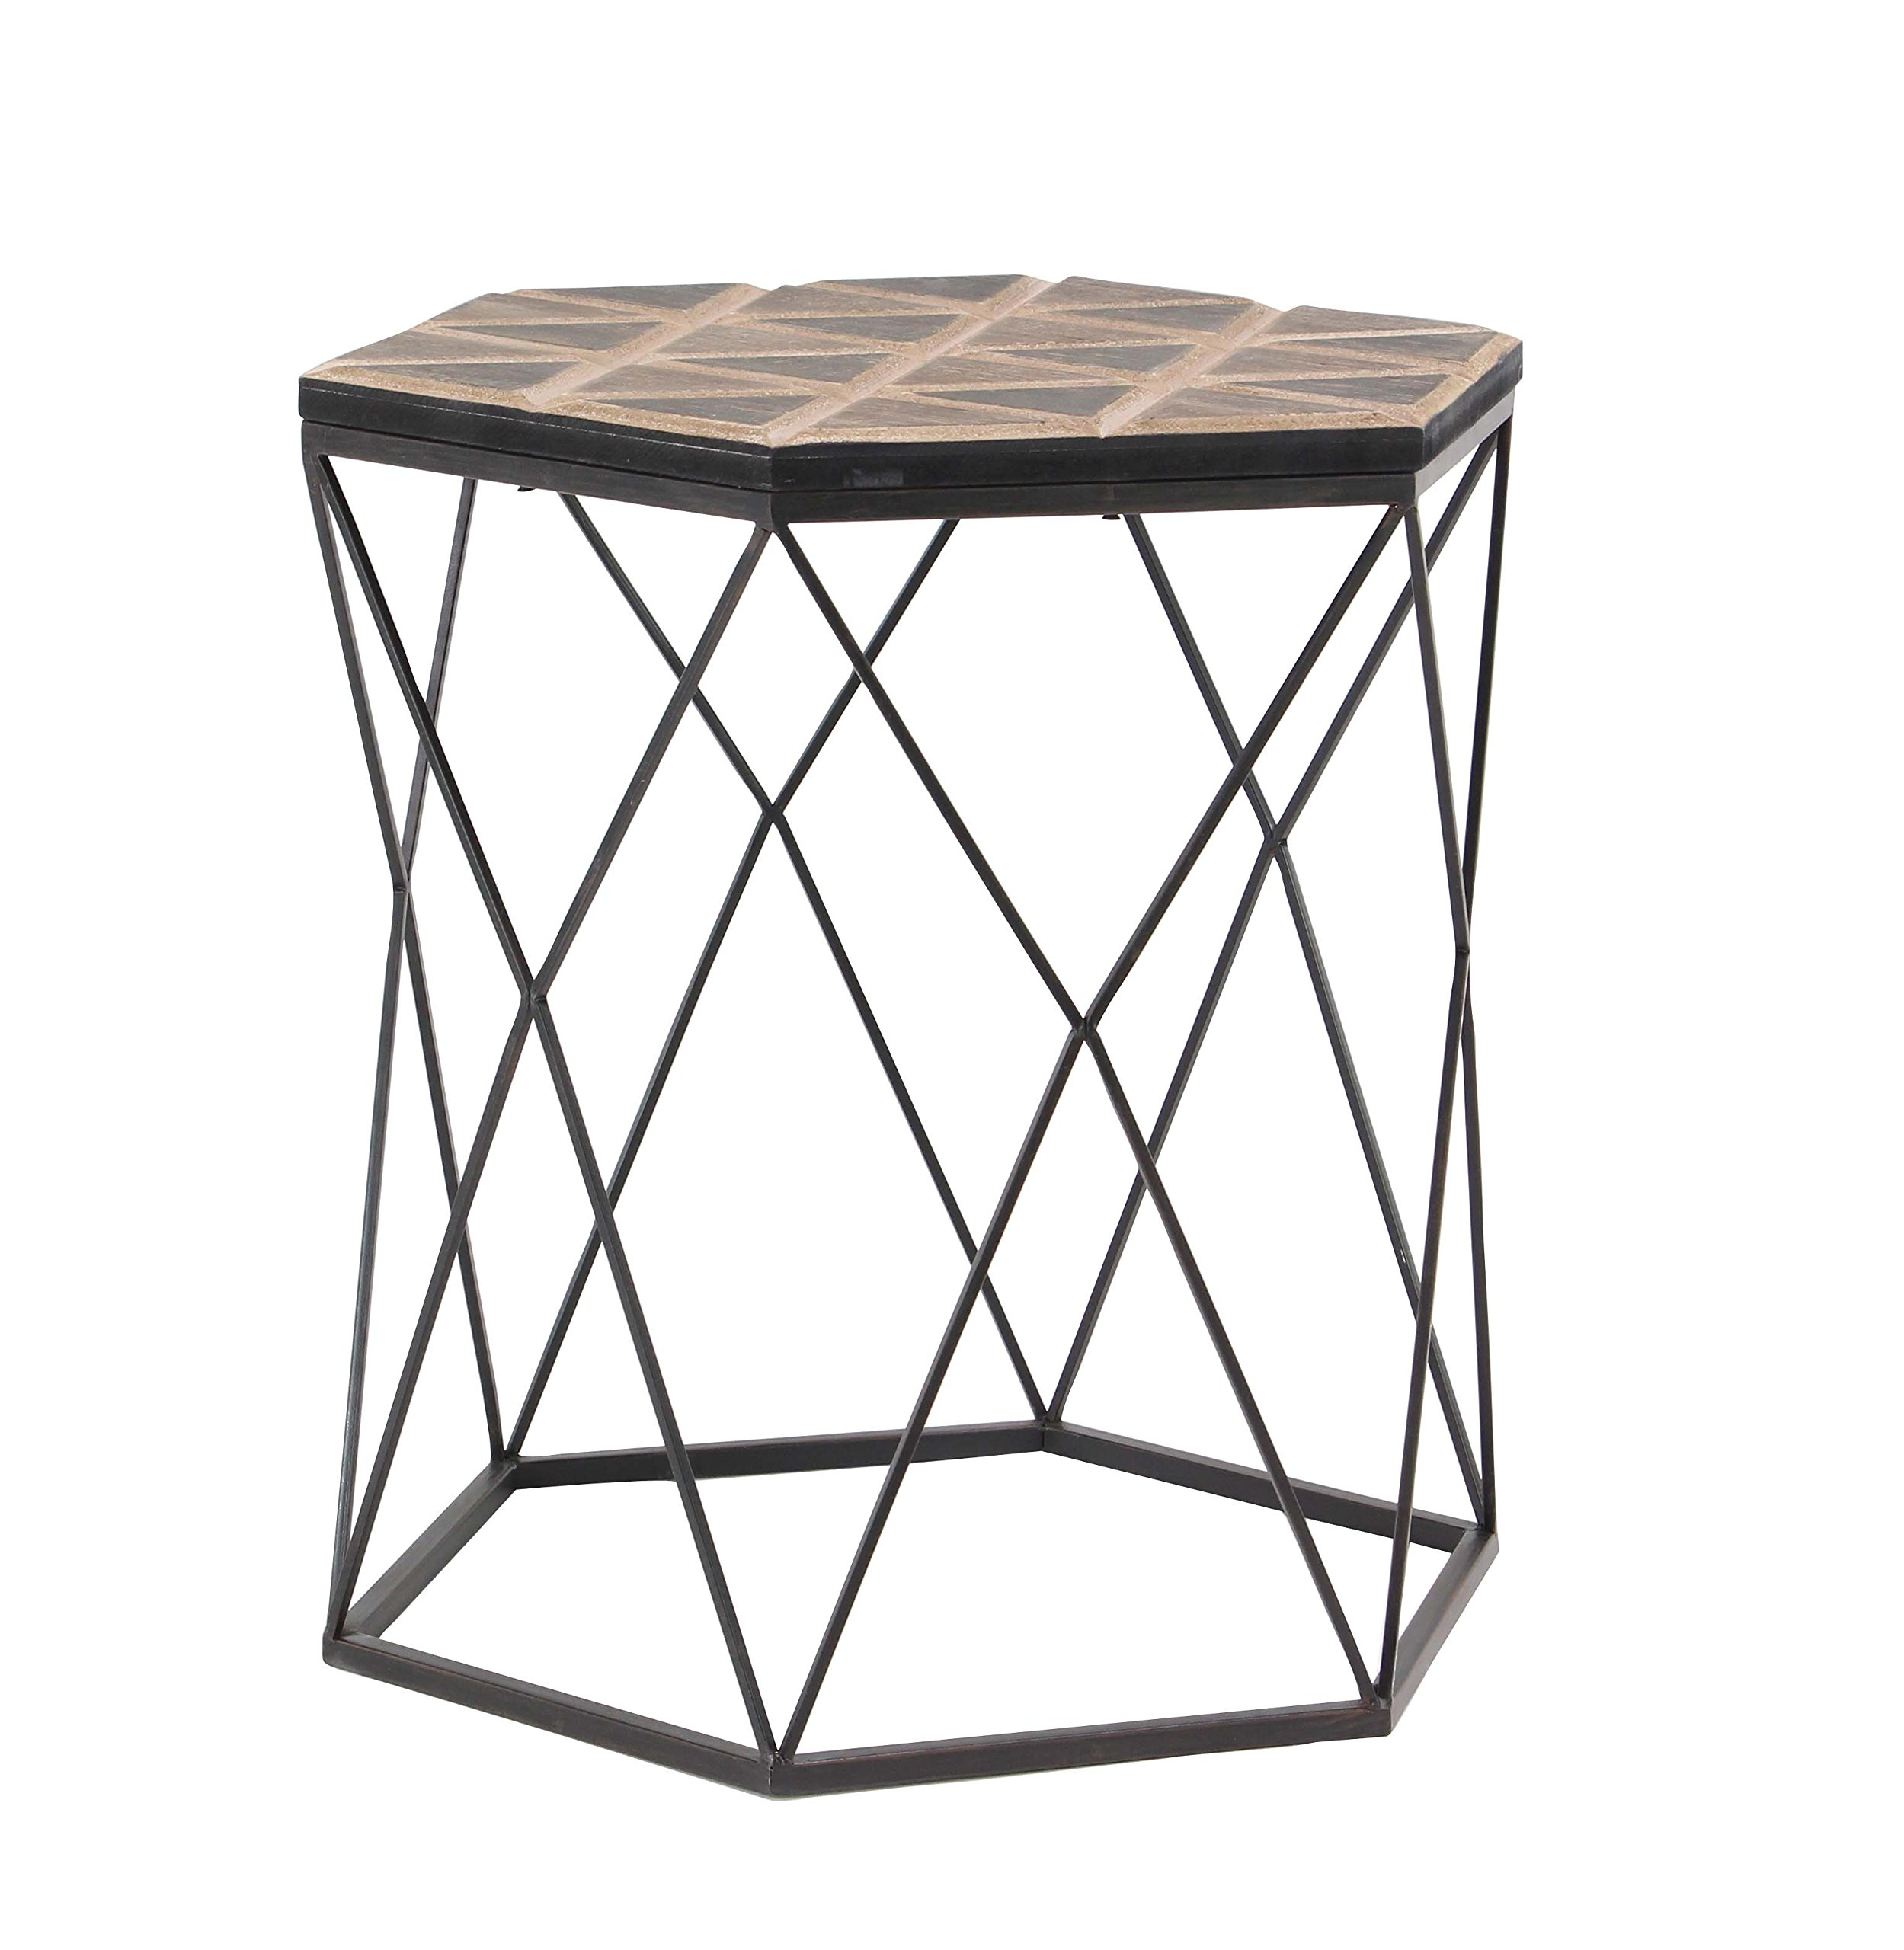 Deco 79 98748 Accent Table Brown/Gray by Deco 79 (Image #2)